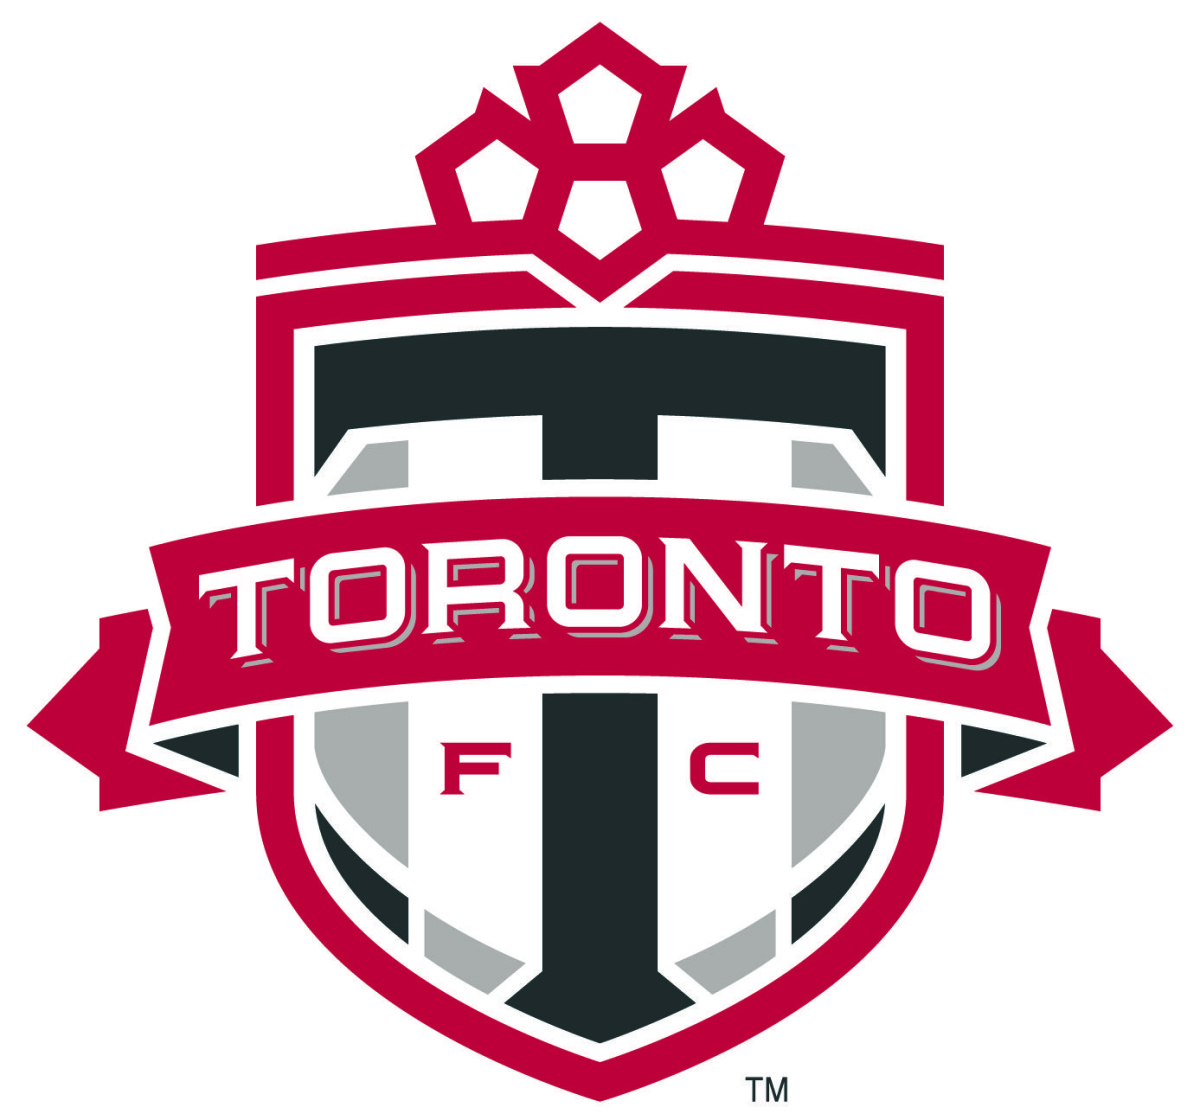 Tyvtxcp5nma there are a certain set of rules of logo design to ensure that the design is the best it can possibly be. TFC vice-president Paul Beirne leaves as MLSE rings in